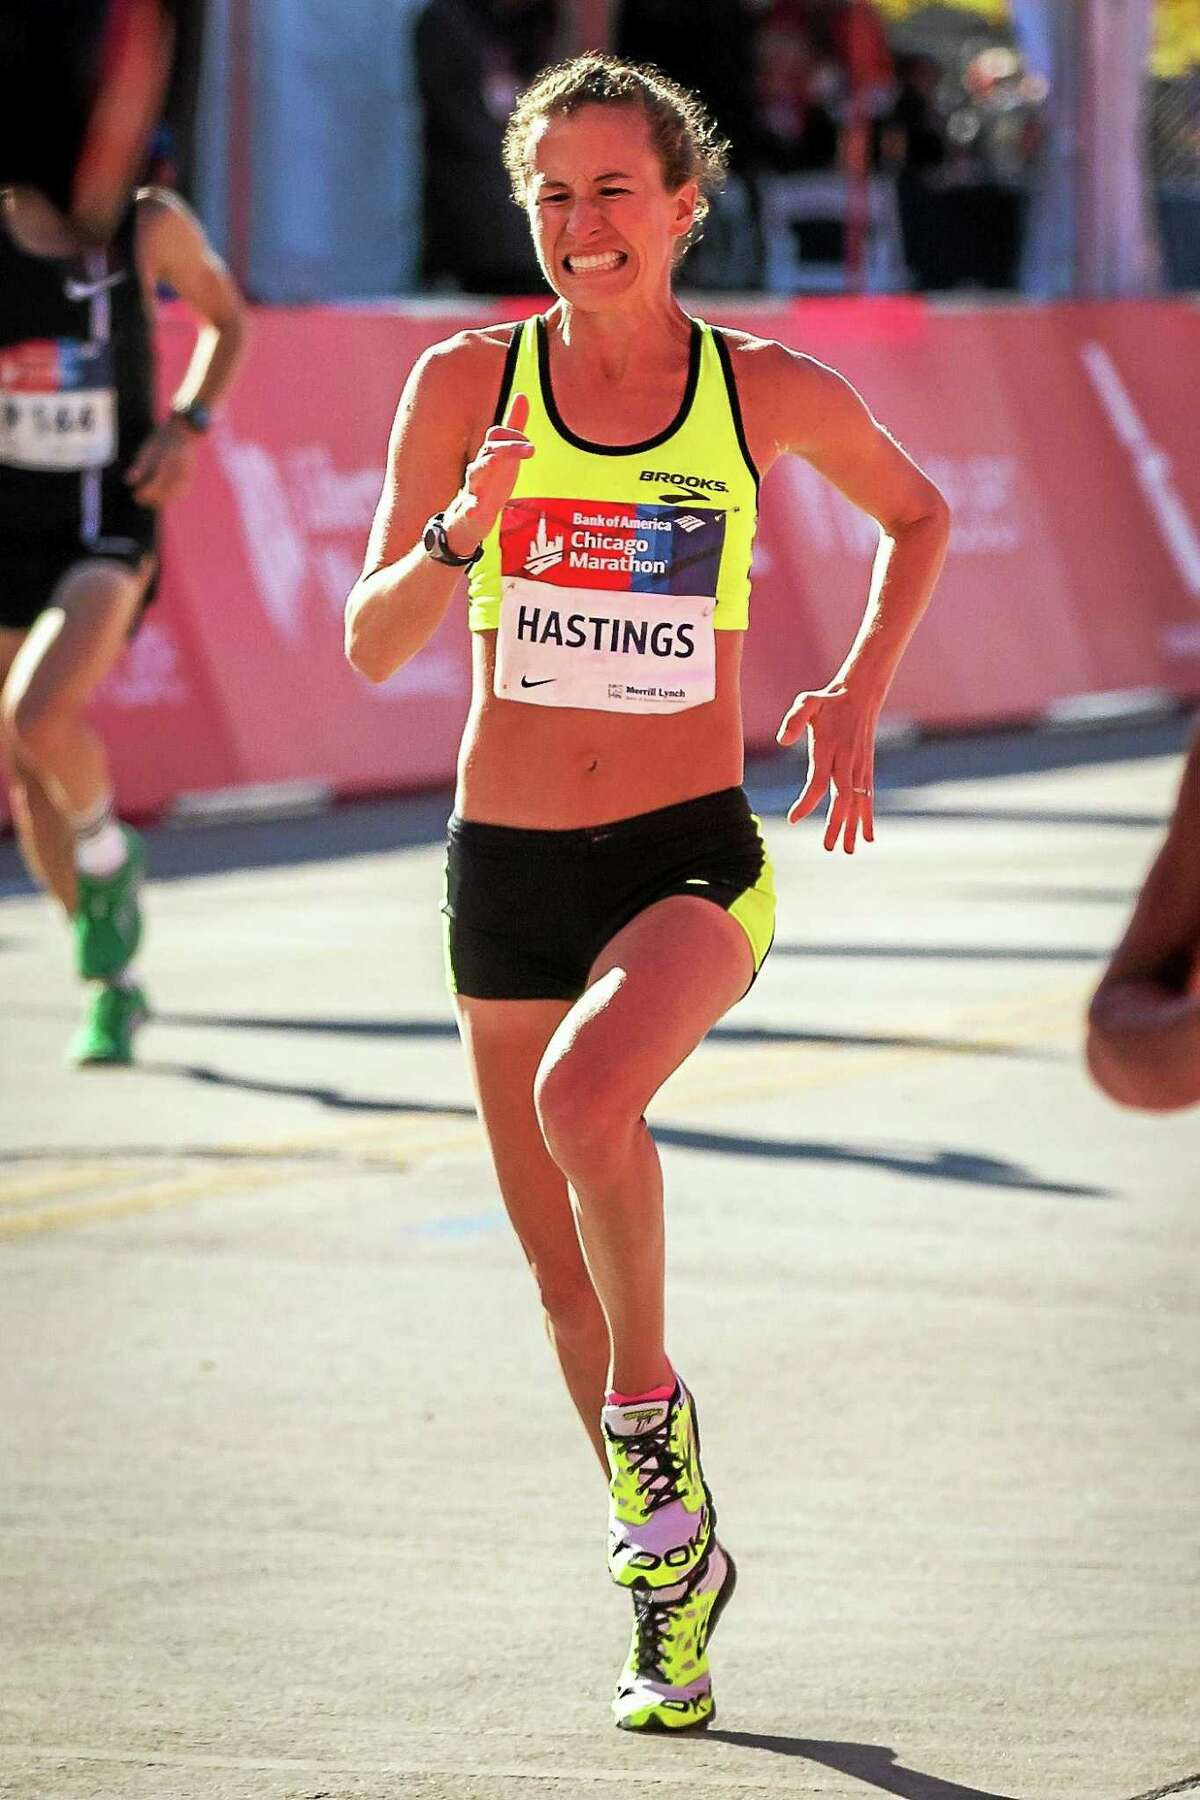 Amy Hastings crosses the finish line at last October's Chicago Marathon. Hastings finished fifth.